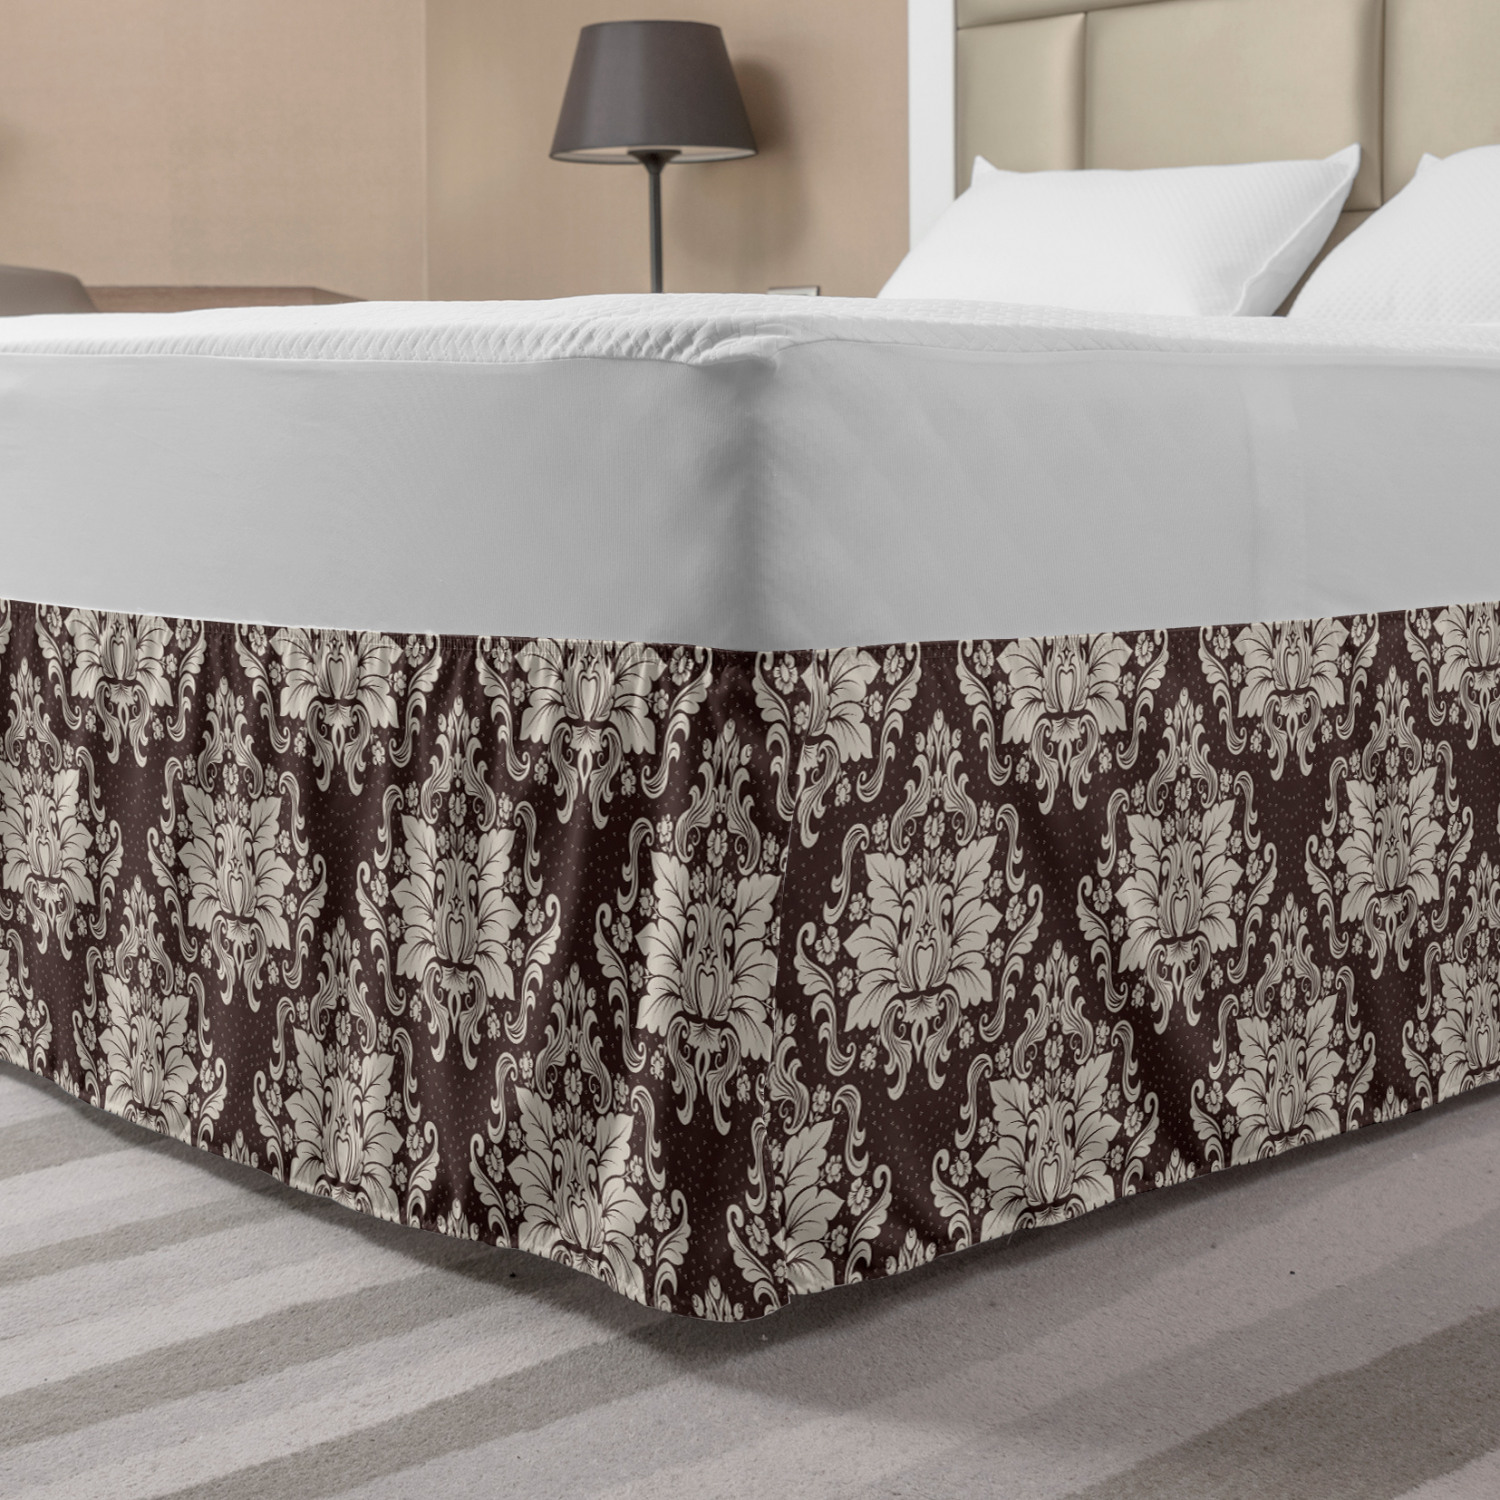 Damask Bed Skirt Victorian Floral Pattern With Blooming Foliage Leaves On Dark Toned Backdrop Elastic Bedskirt Dust Ruffle Wrap Around For Bedding Decor 4 Sizes Brown And Beige By Ambesonne Walmart Com